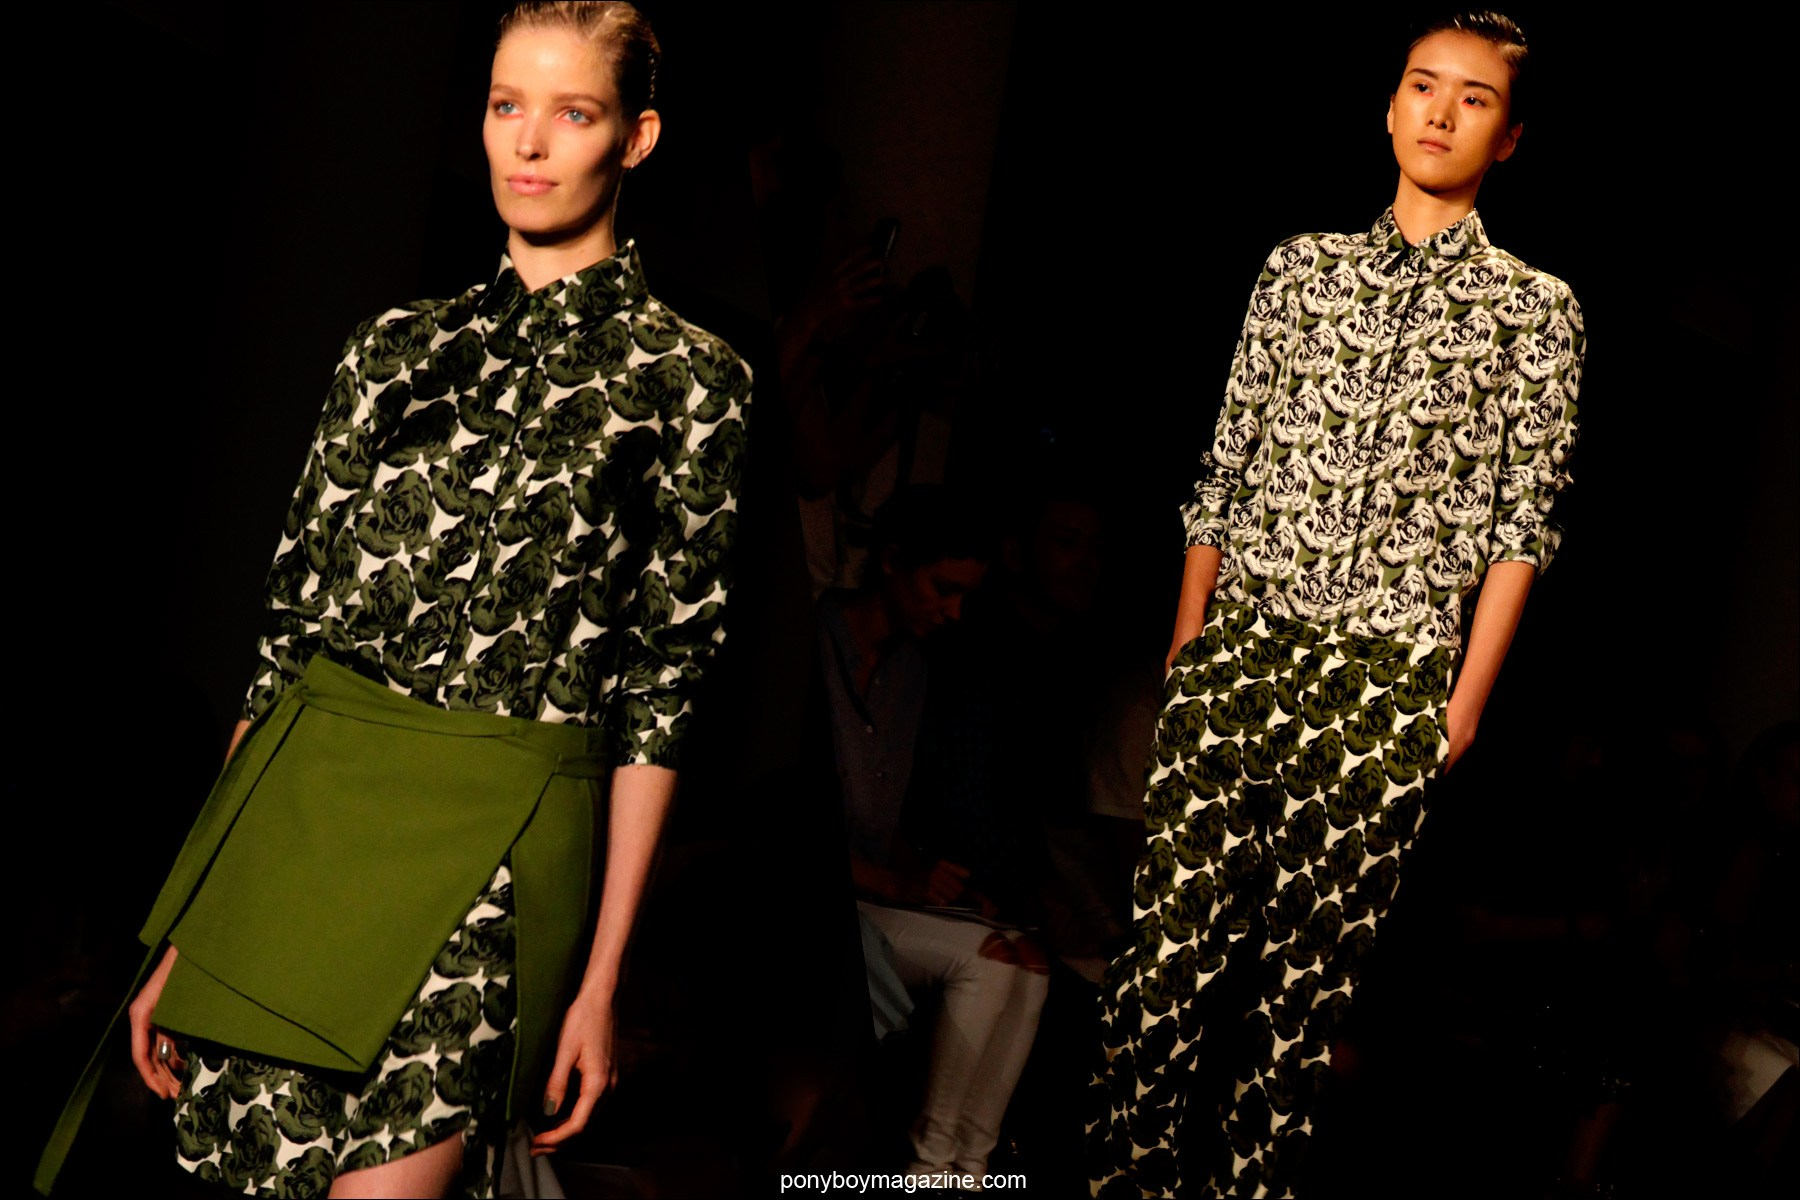 Models wear graphic patterns on the Peter Som S/S15 runway. Photographs by Alexander Thompson for Ponyboy Magazine.